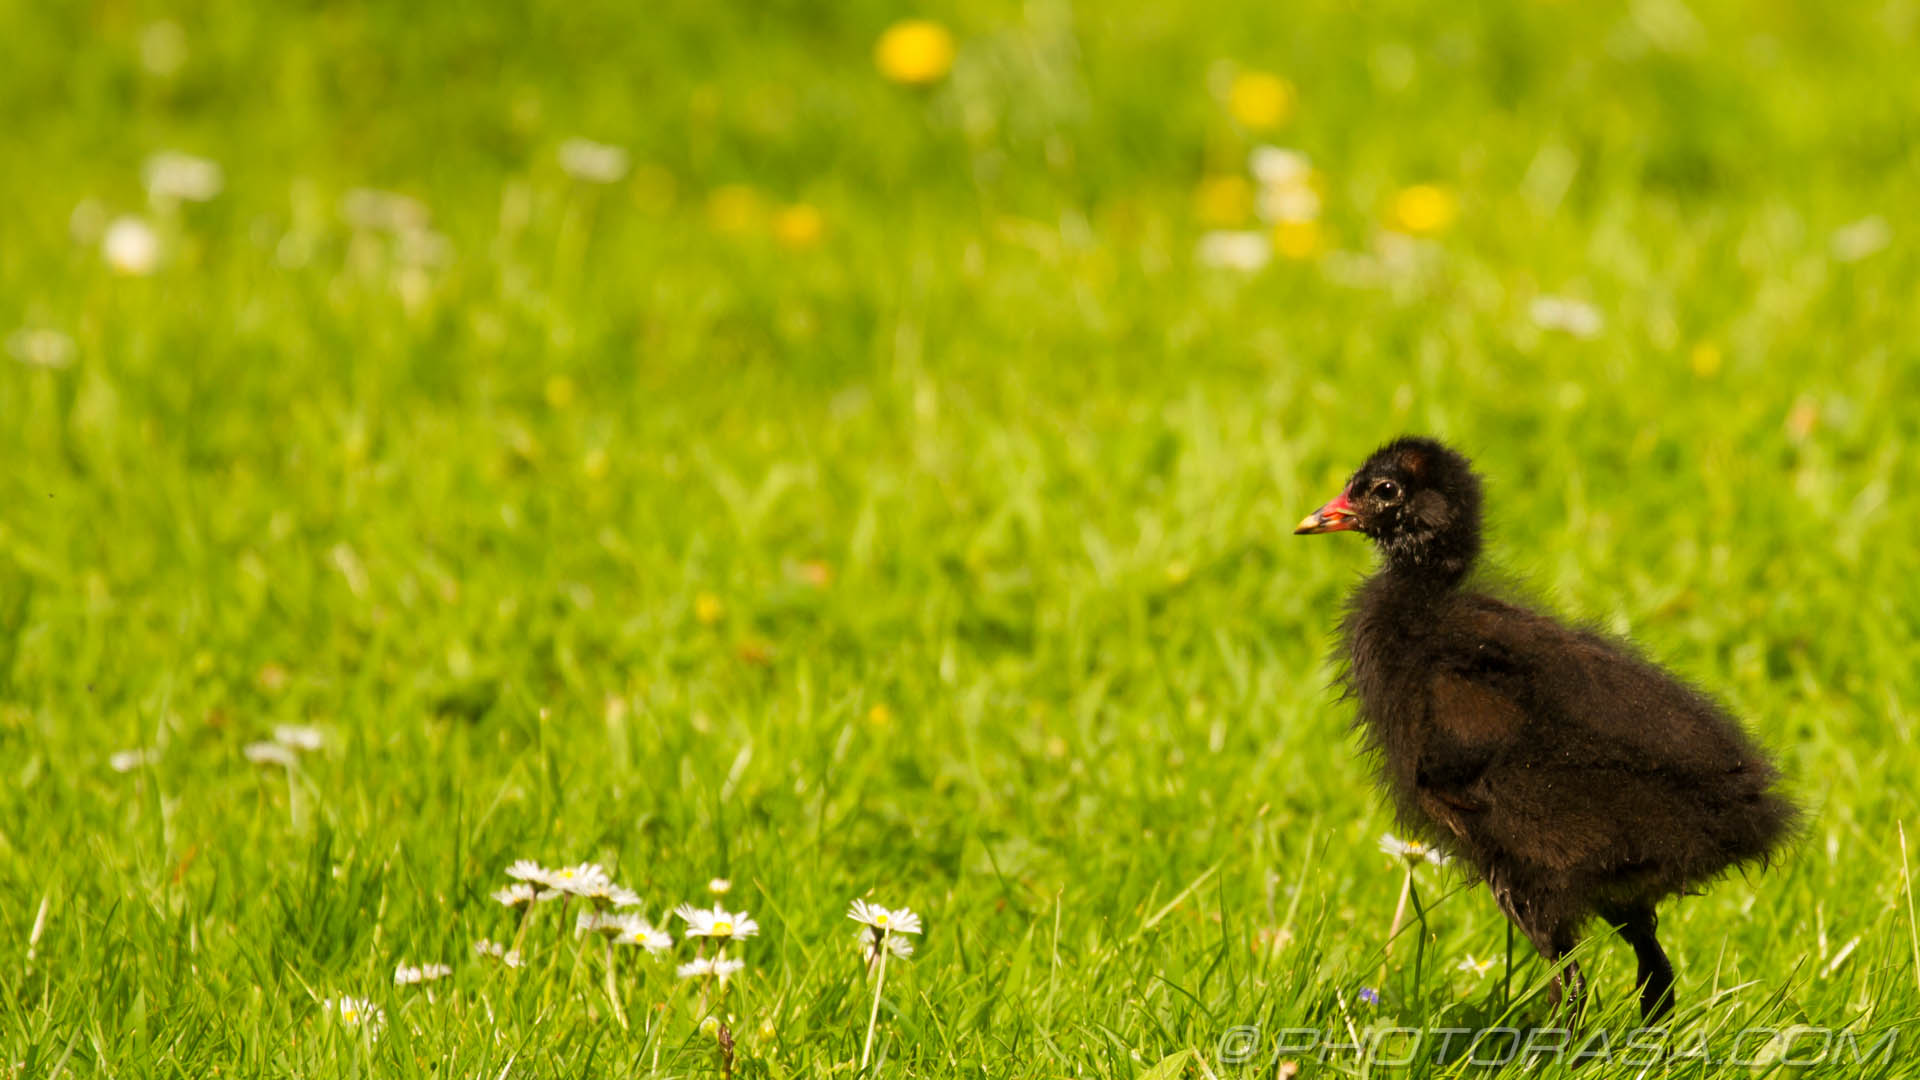 http://photorasa.com/baby-moorhens/young-moorhen-on-the-grass/